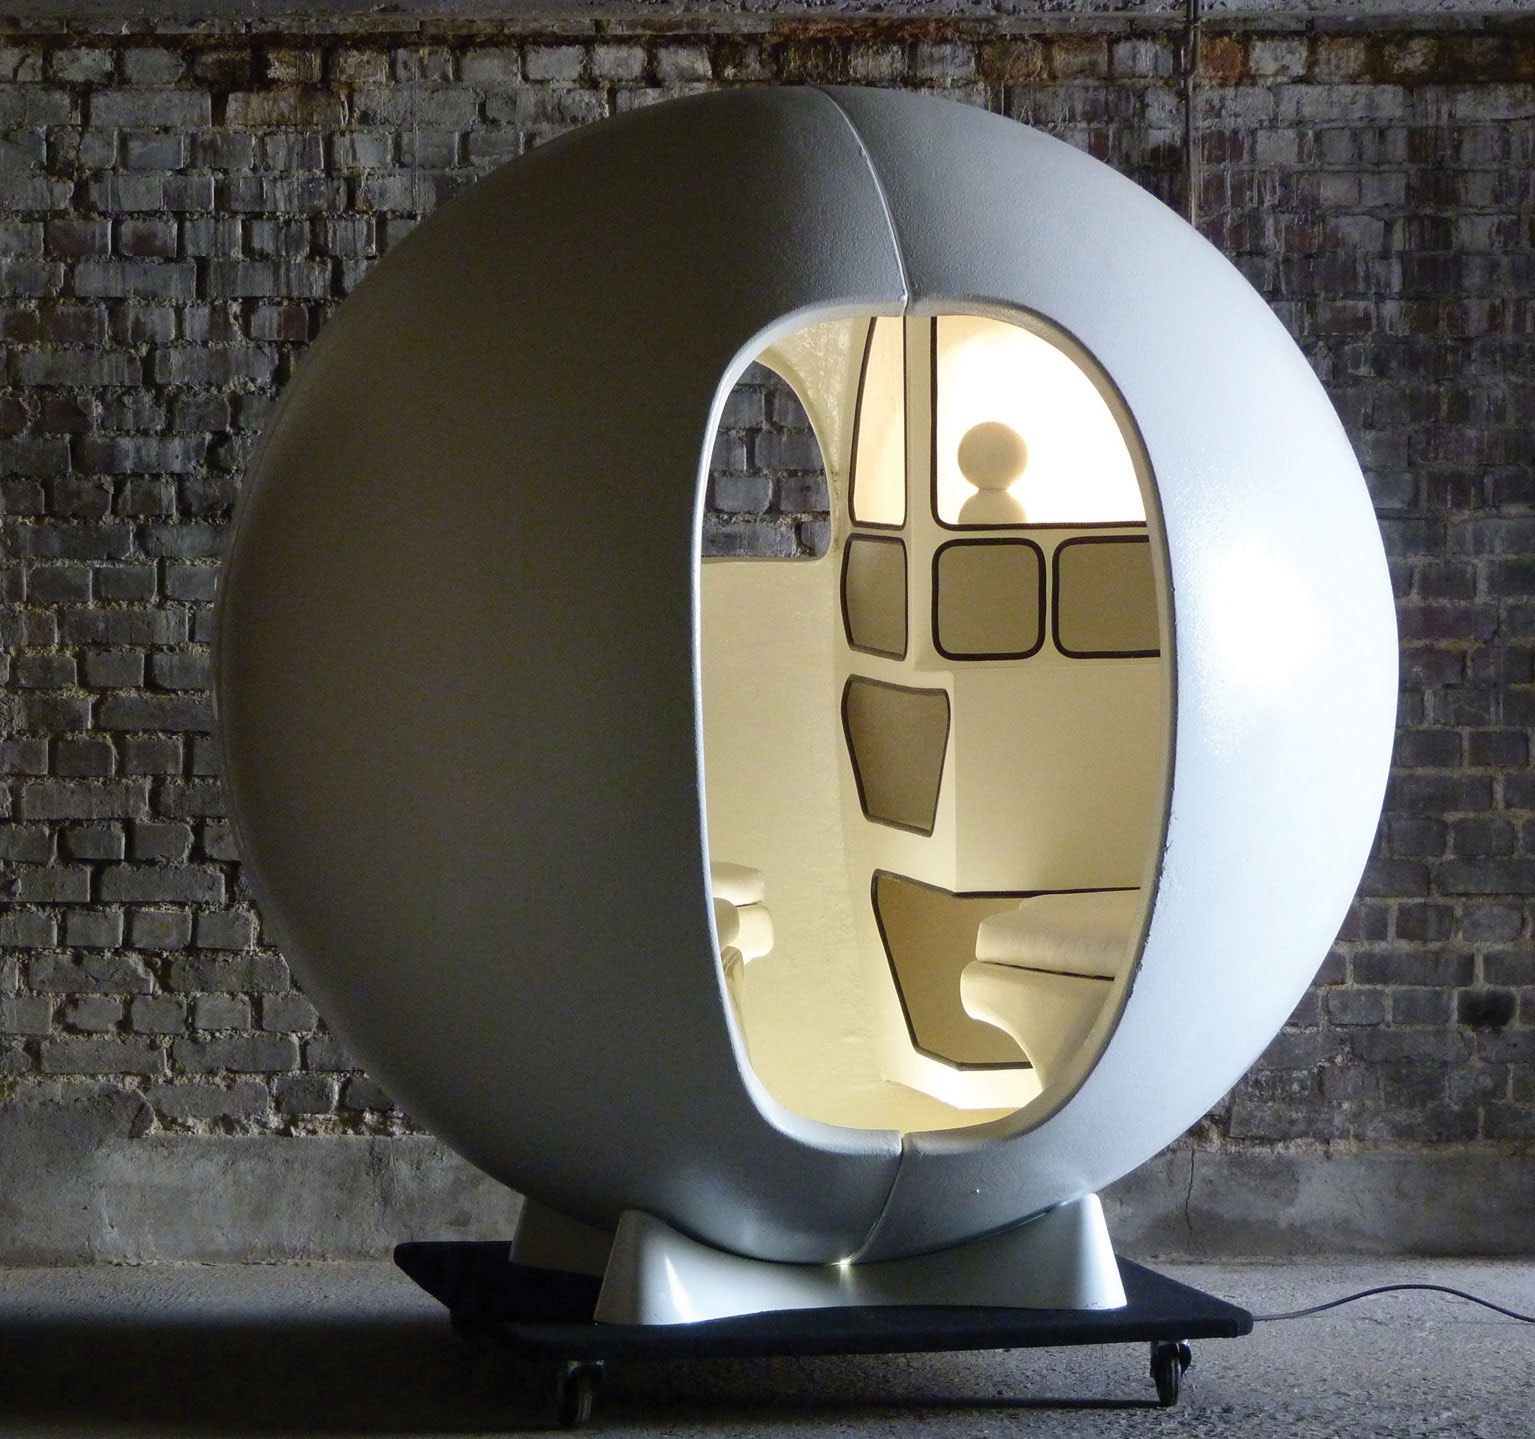 Isolation Sphere by Maurice Claude Vidili, 1972, courtesy of Maison Gerard